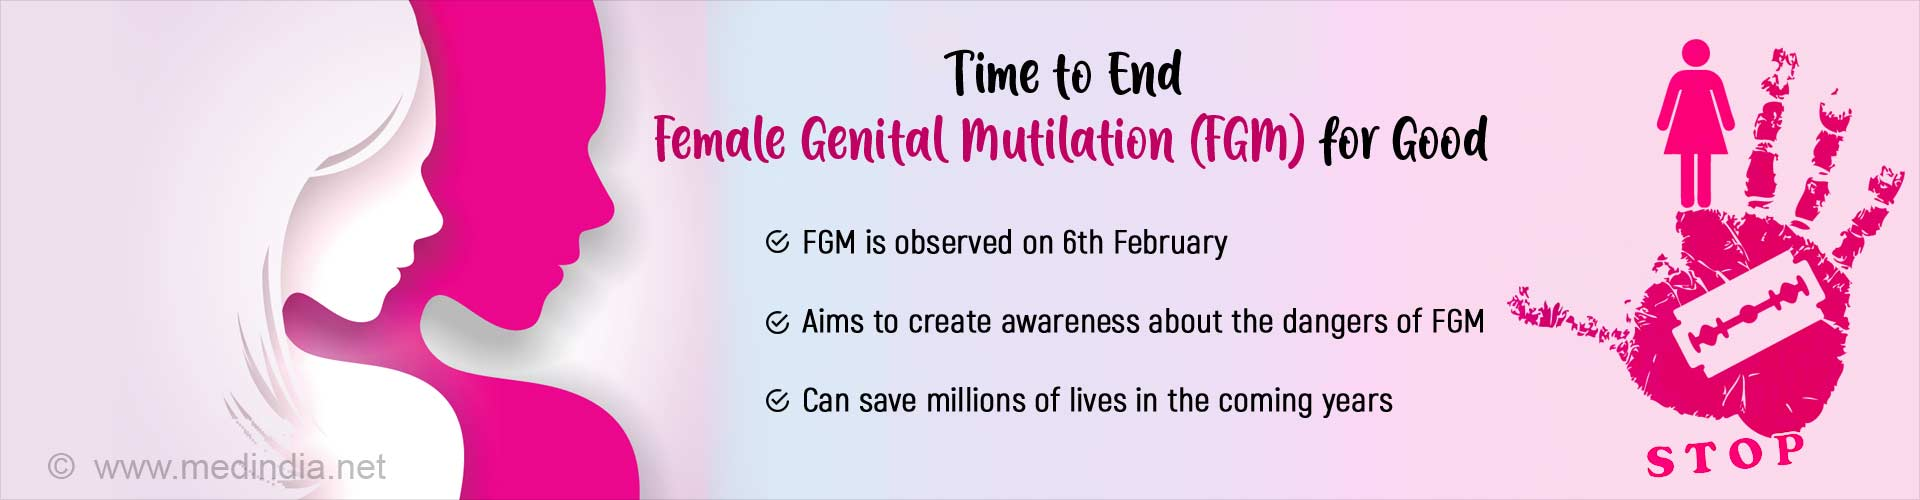 International Day of Zero Tolerance for Female Genital Mutilation - Time to End This Social Evil